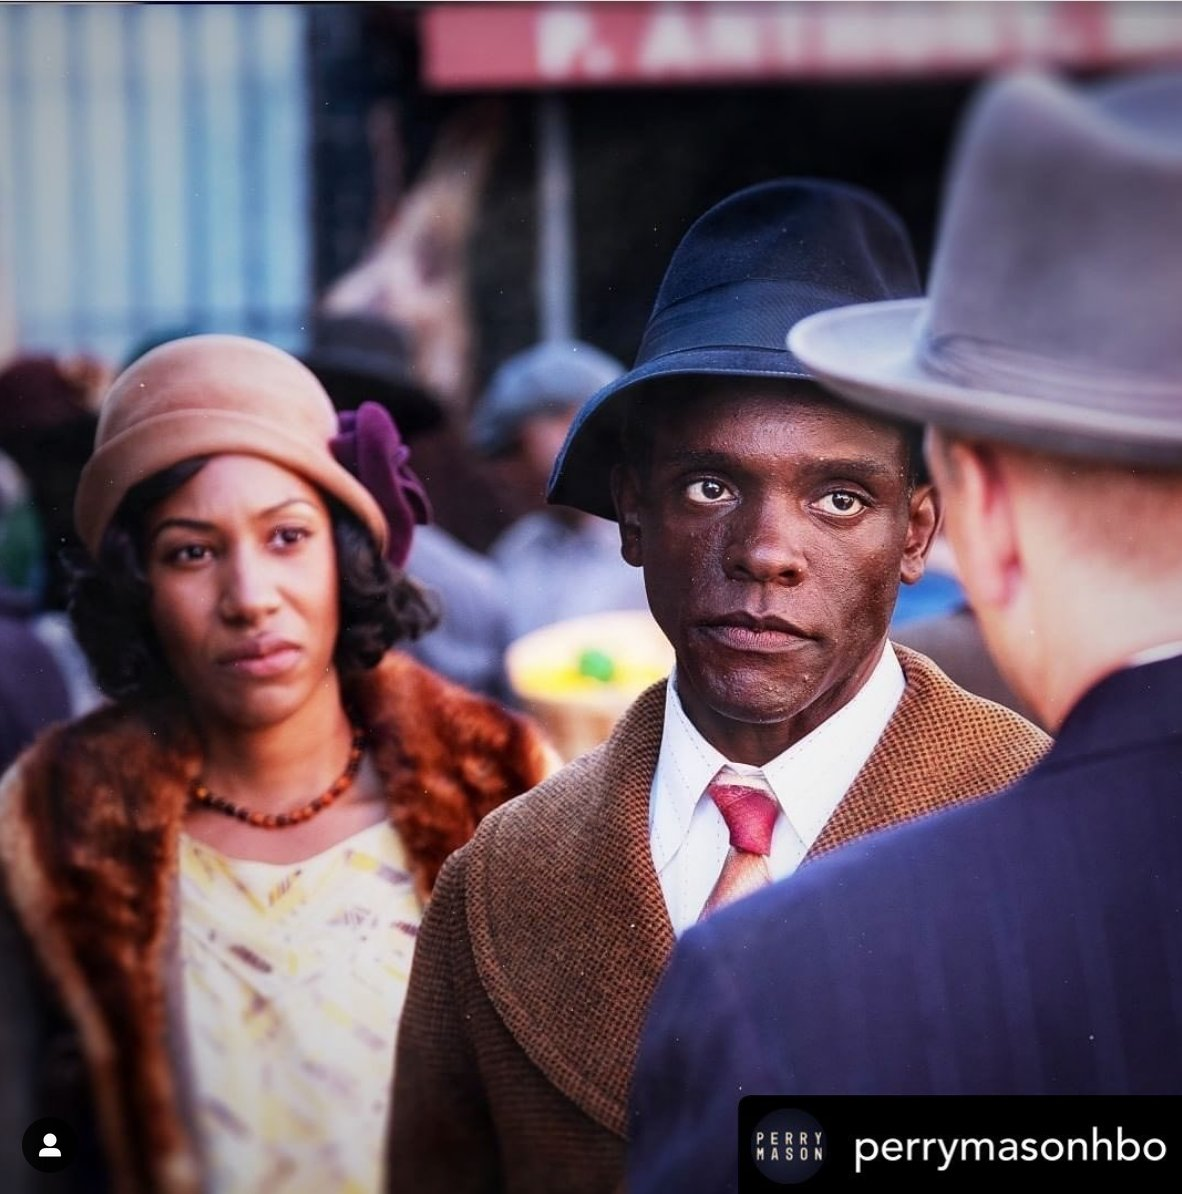 Whos watching @PerryMasonHBO ? If you havent seen it yet, give it a look; it features our very own Lucius Fox, @chalkchris and its really good!